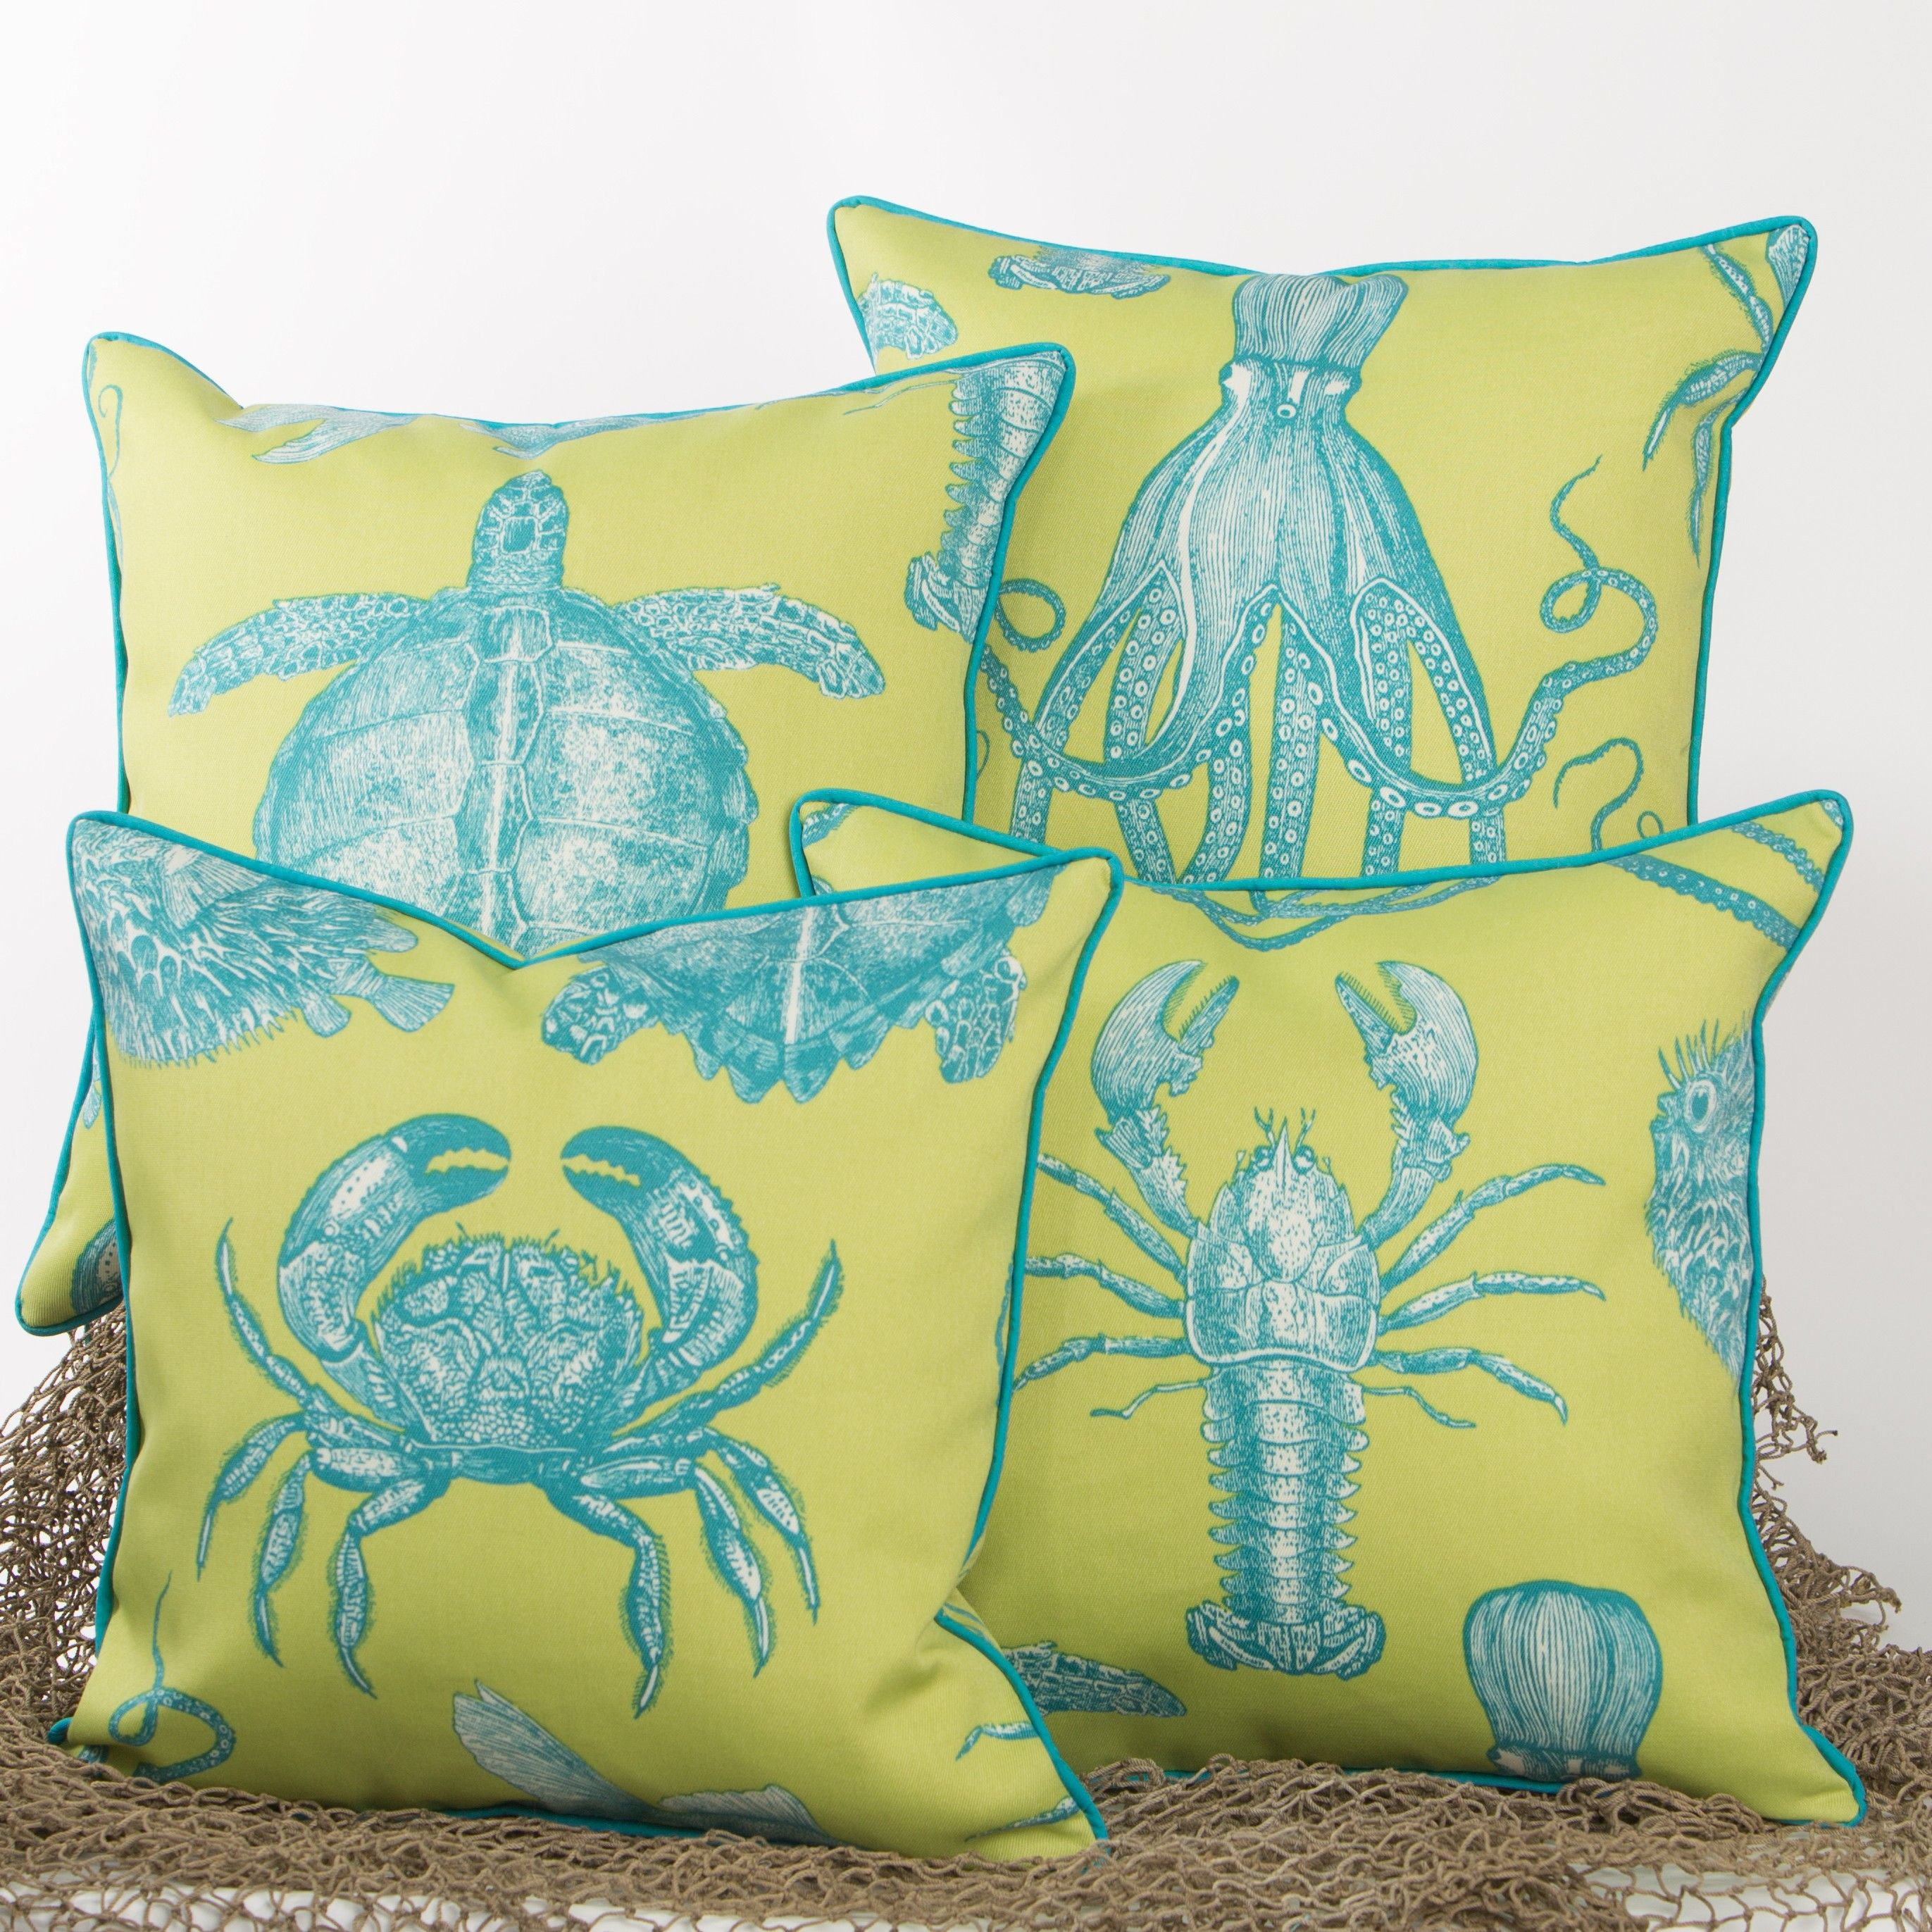 and best bubbles with private coastal fish beach pillow pillows